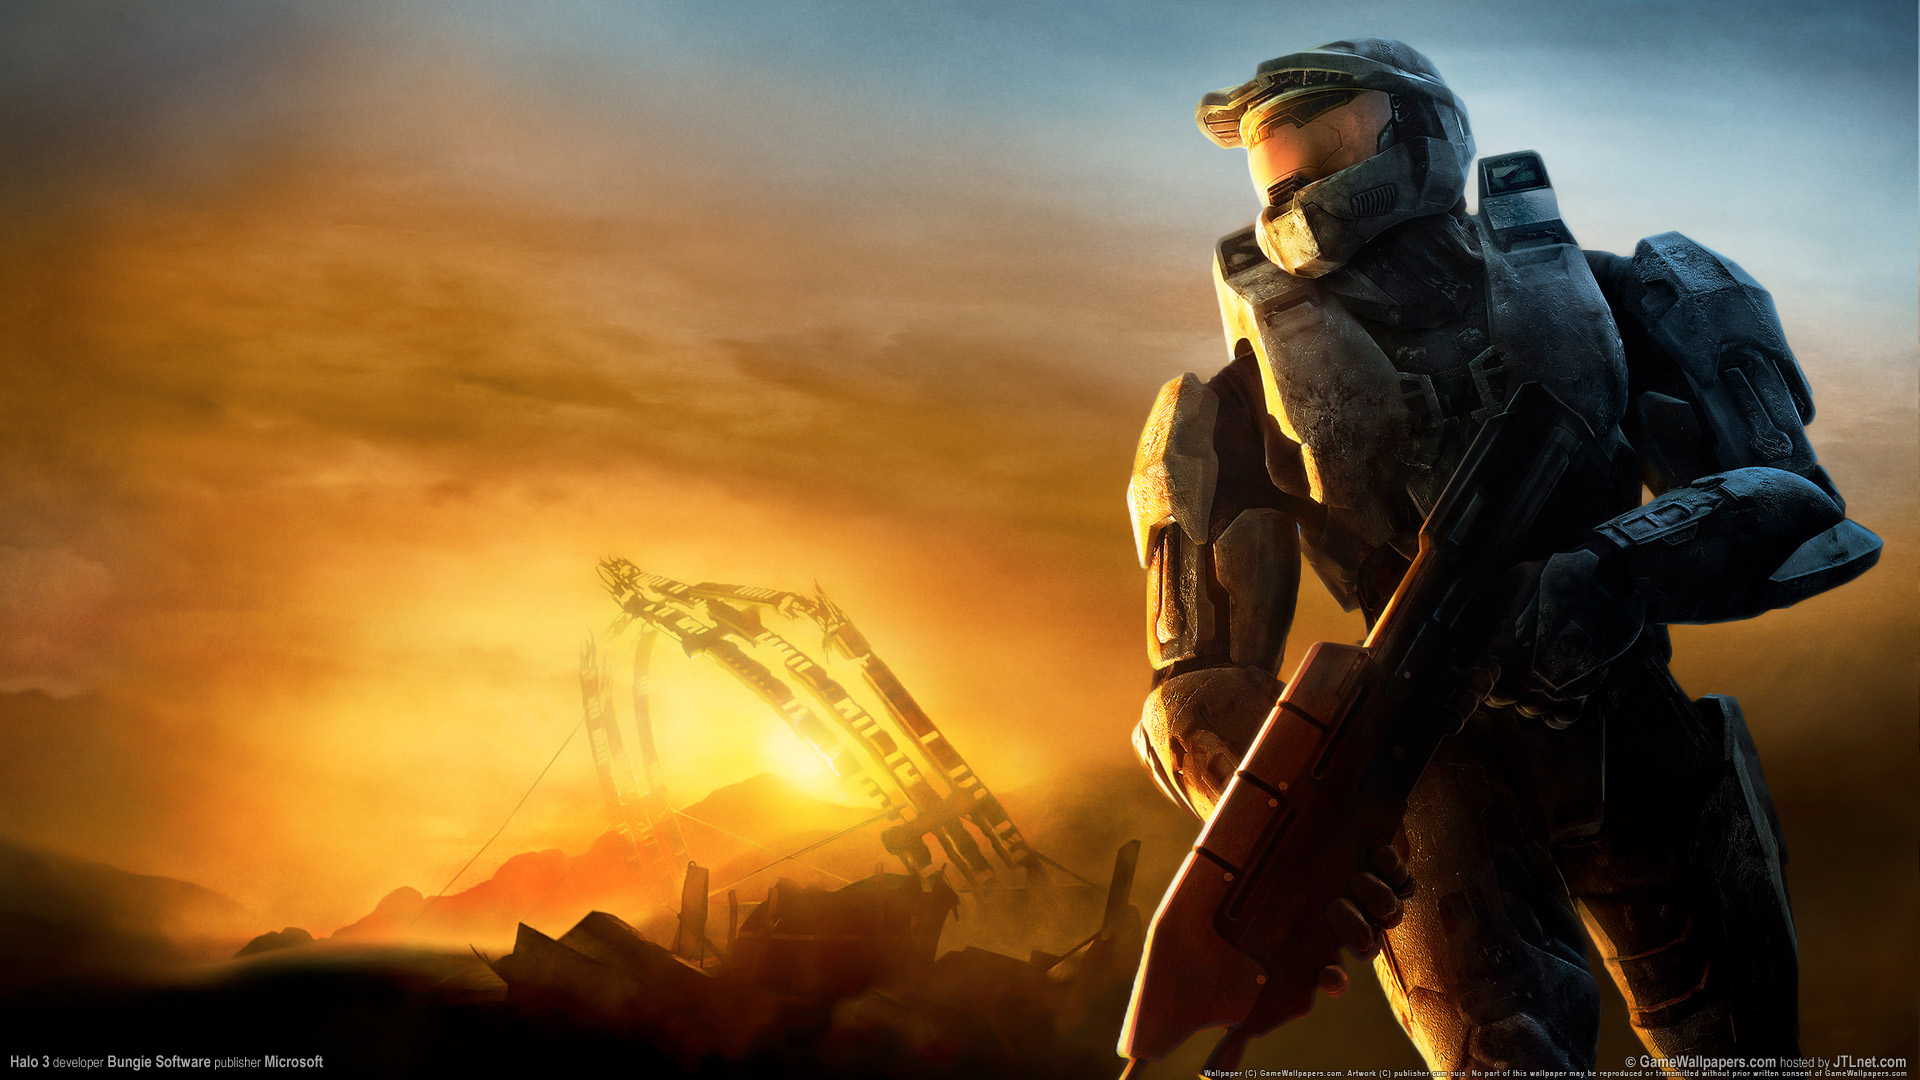 Halo 3 HD Wallpapers HD Wallpapers 1920x1080